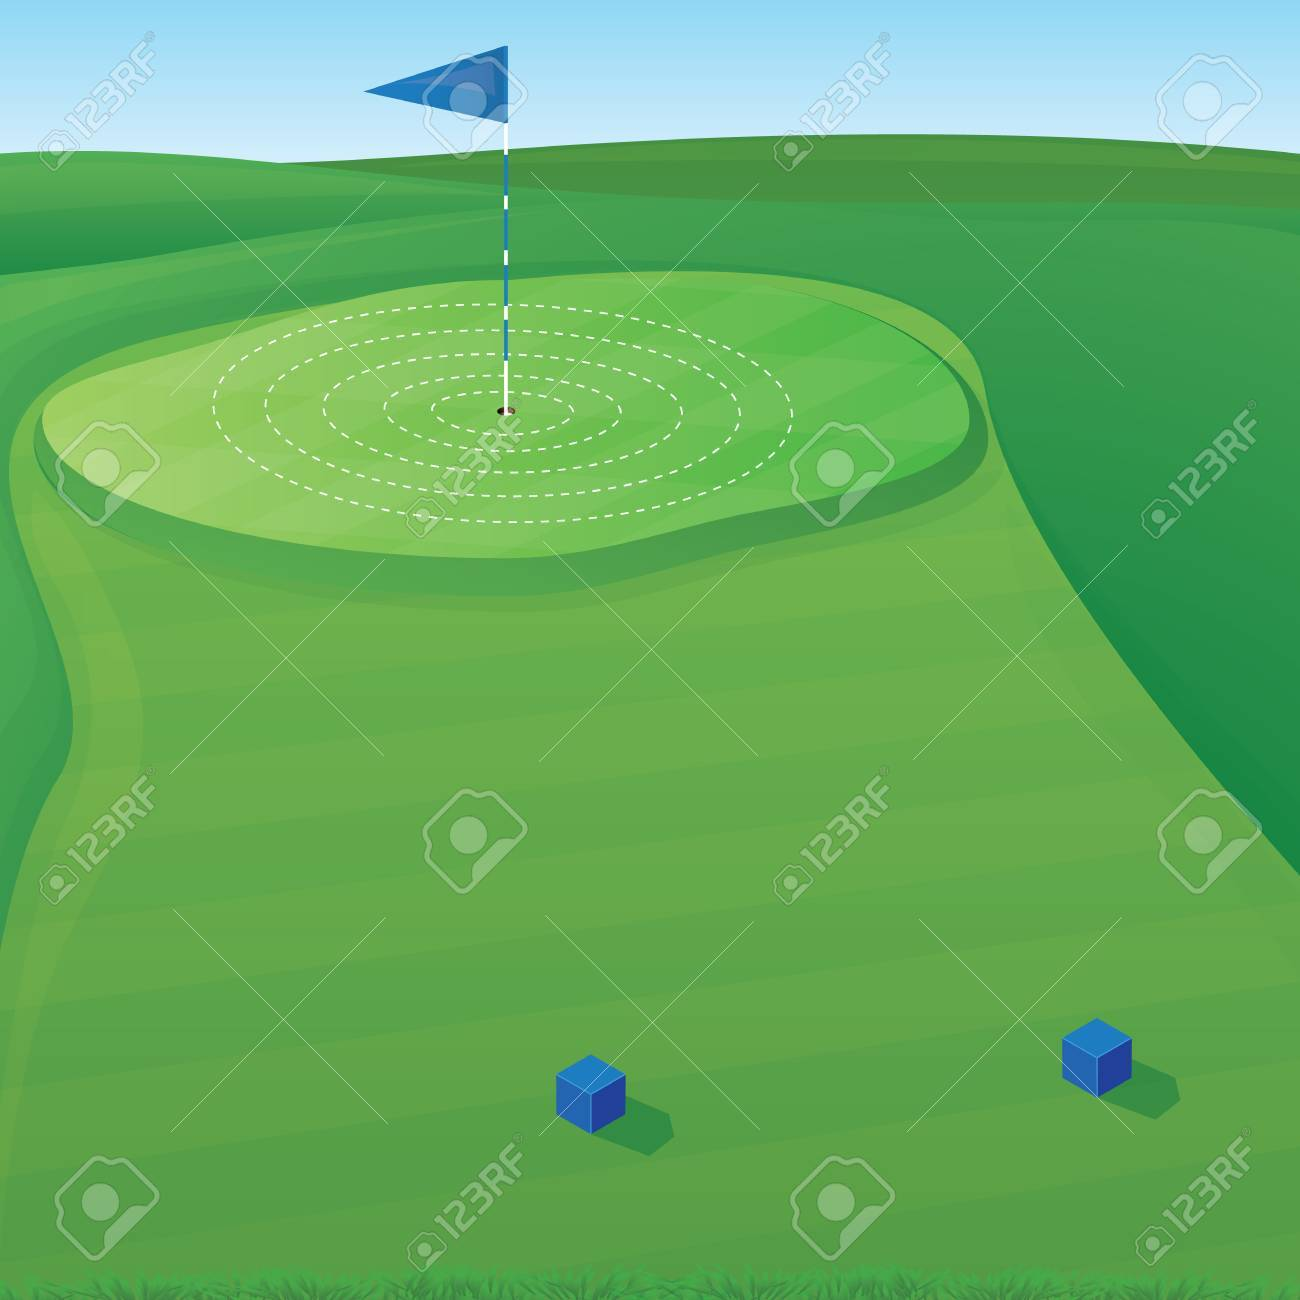 Golf Course Background Illustration With Target Circles Royalty Free Cliparts Vectors And Stock Illustration Image 24767262